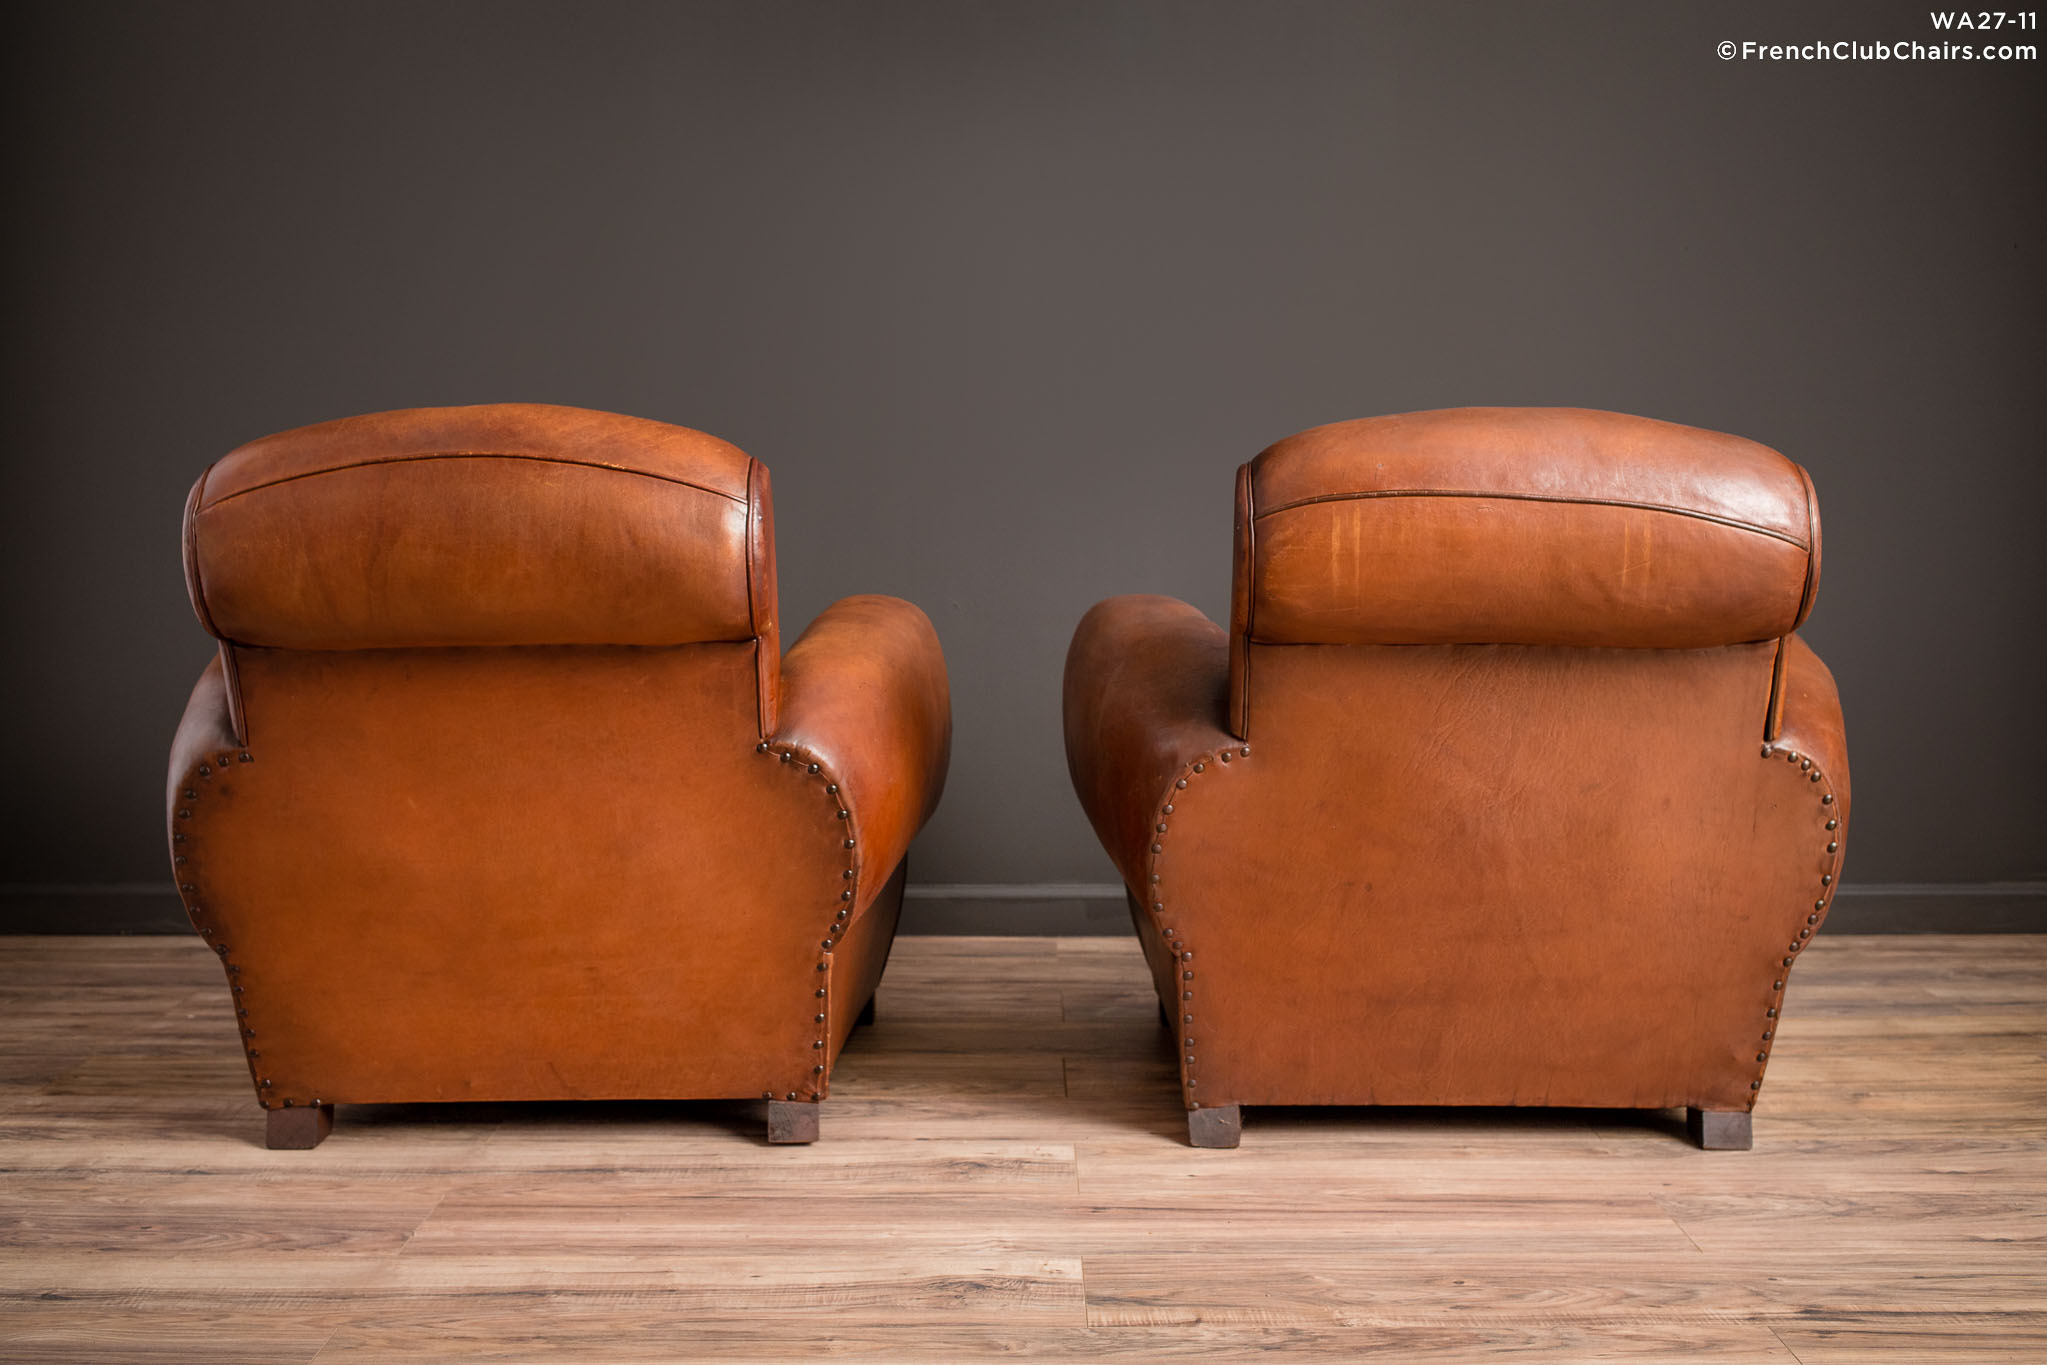 WA_27-11_Chatou_Rollback_Pair_R_2BK-v01-williams-antiks-leather-french-club-chair-wa_fcccom